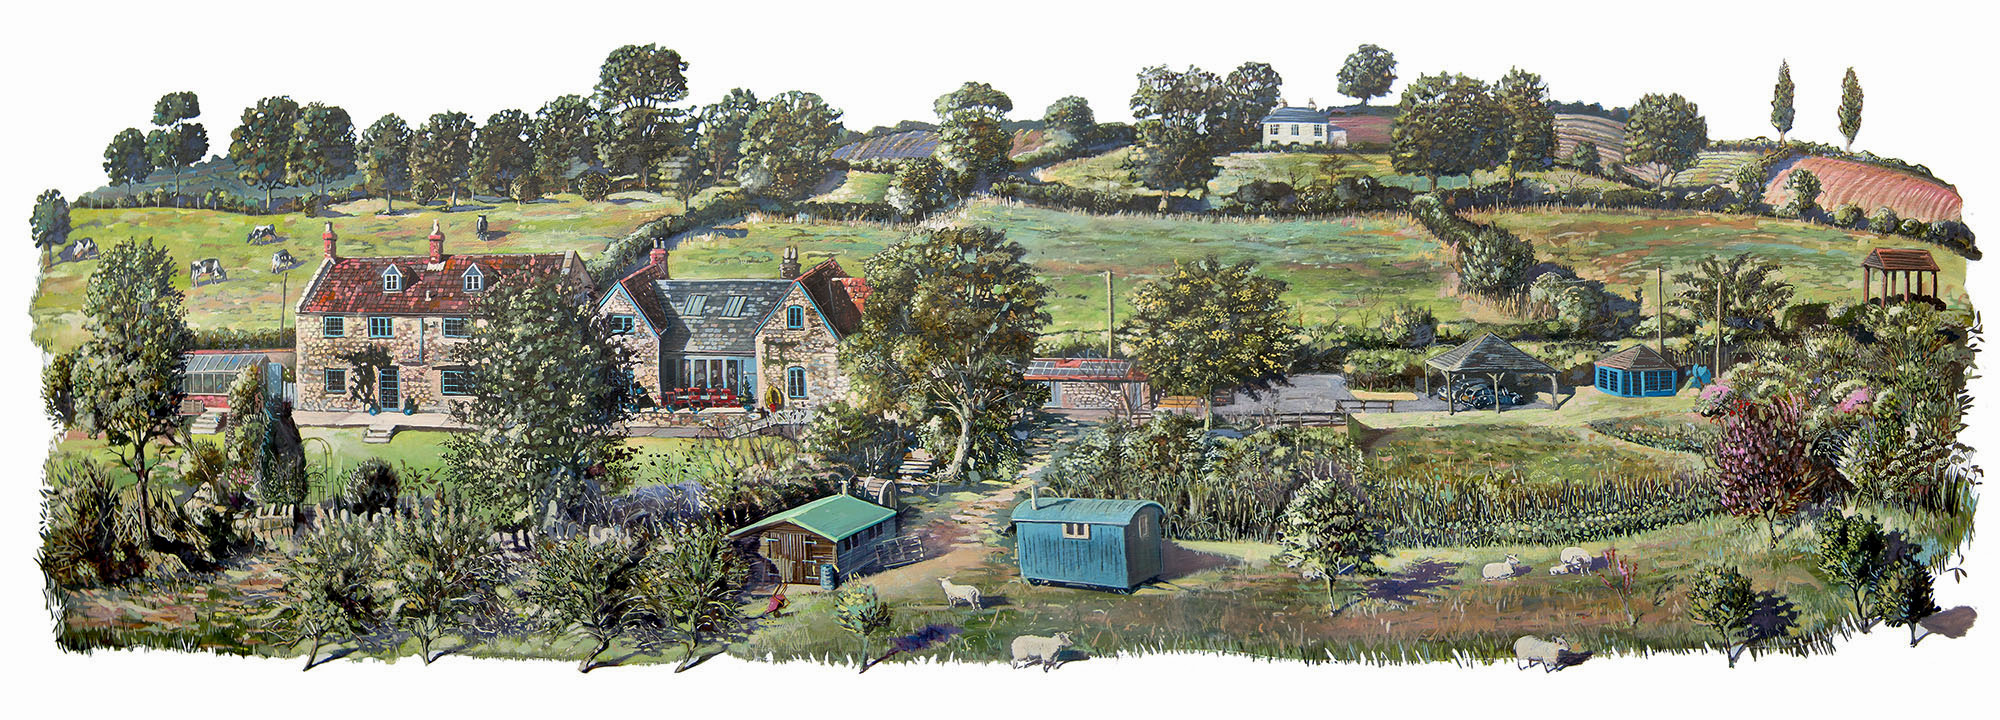 A painting of Pilton Somerset